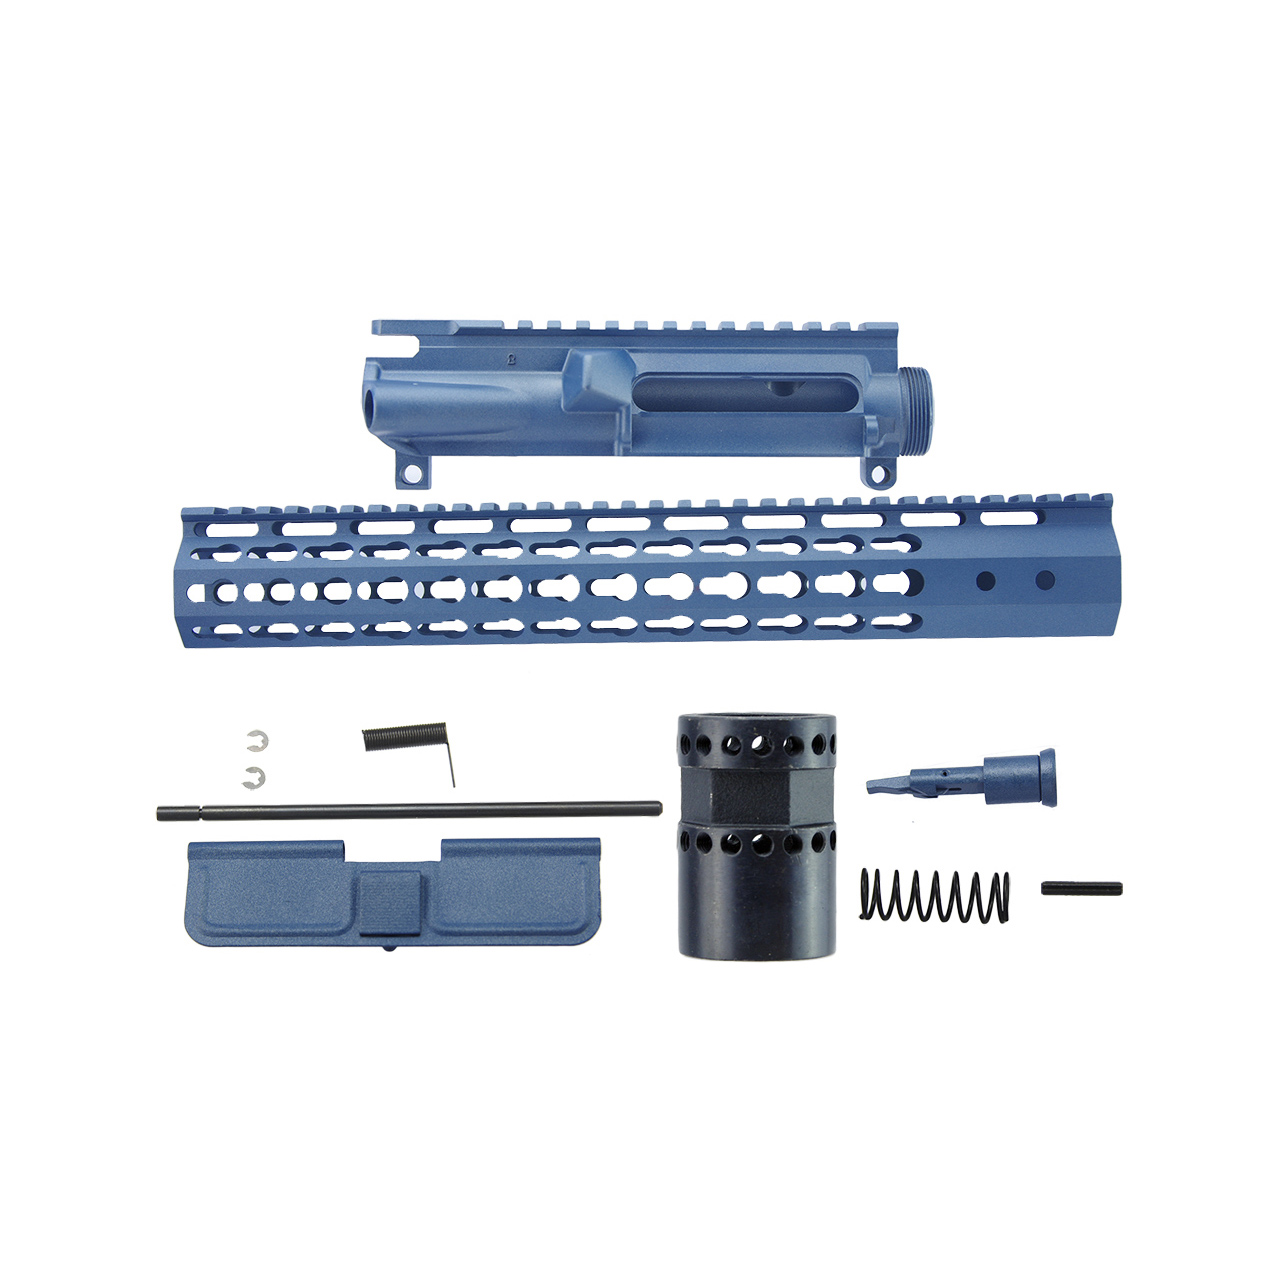 AR15 7 sided upper receiver kit, blue titanium cerakote